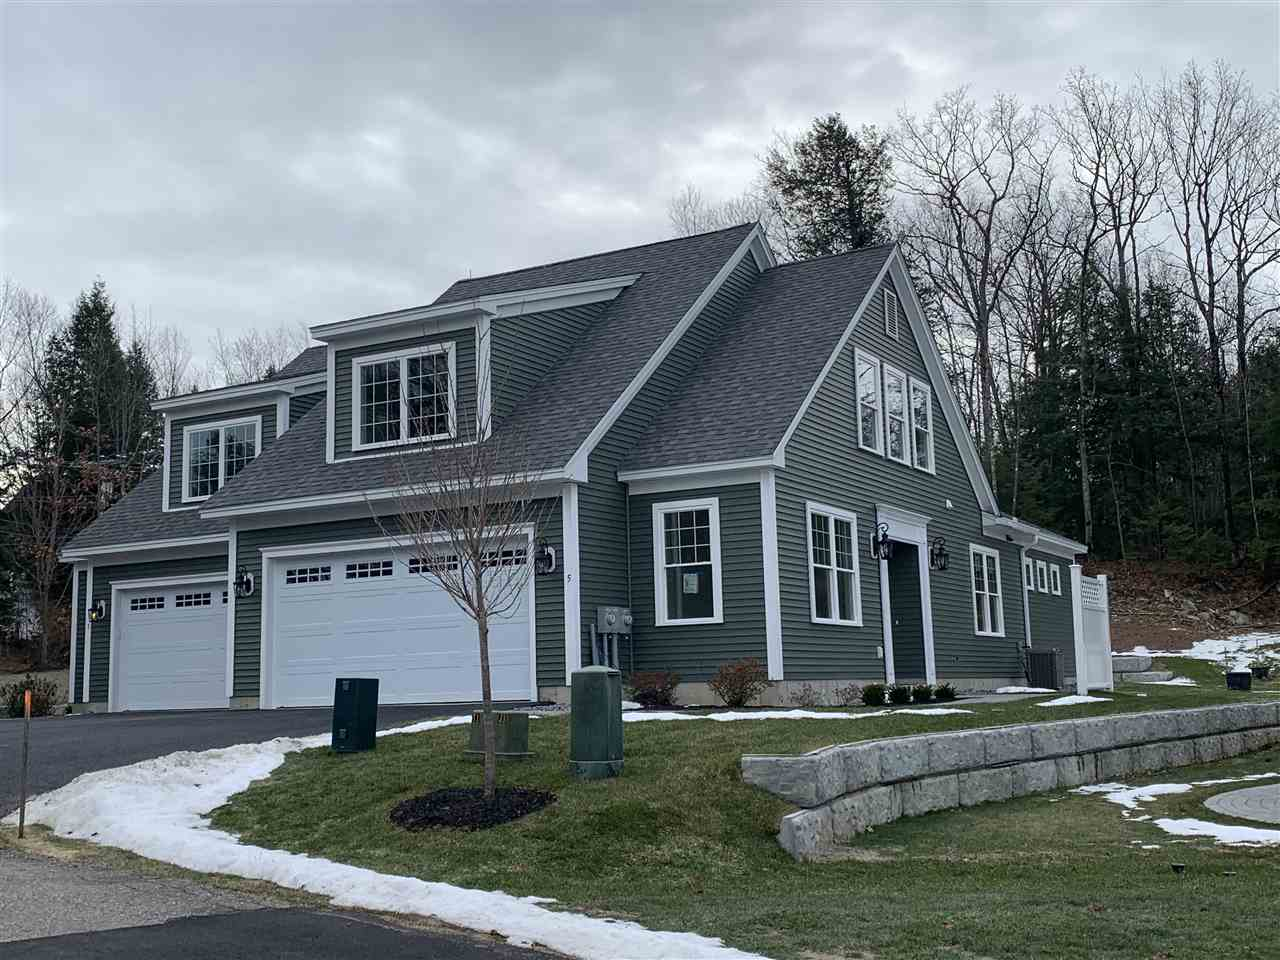 Photo of 5 Green Road Newmarket NH 03857